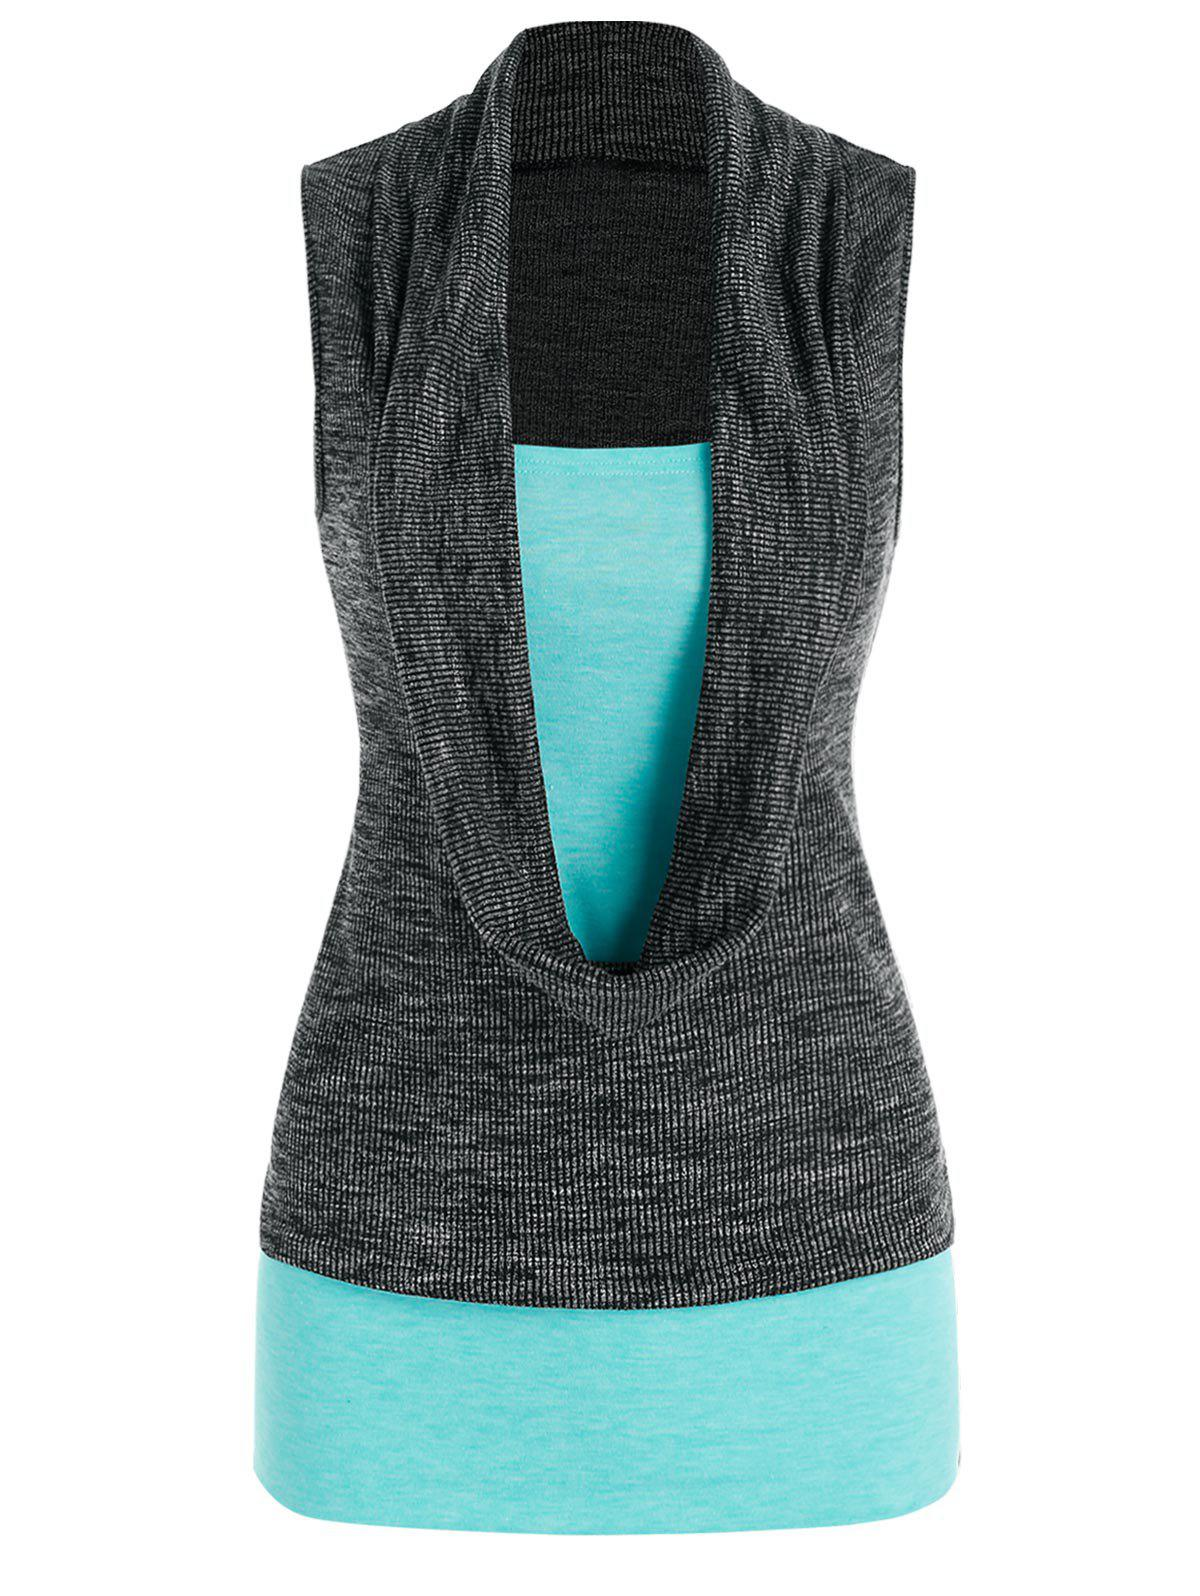 Online Cowl Front Heathered 2 in 1 Tank Top